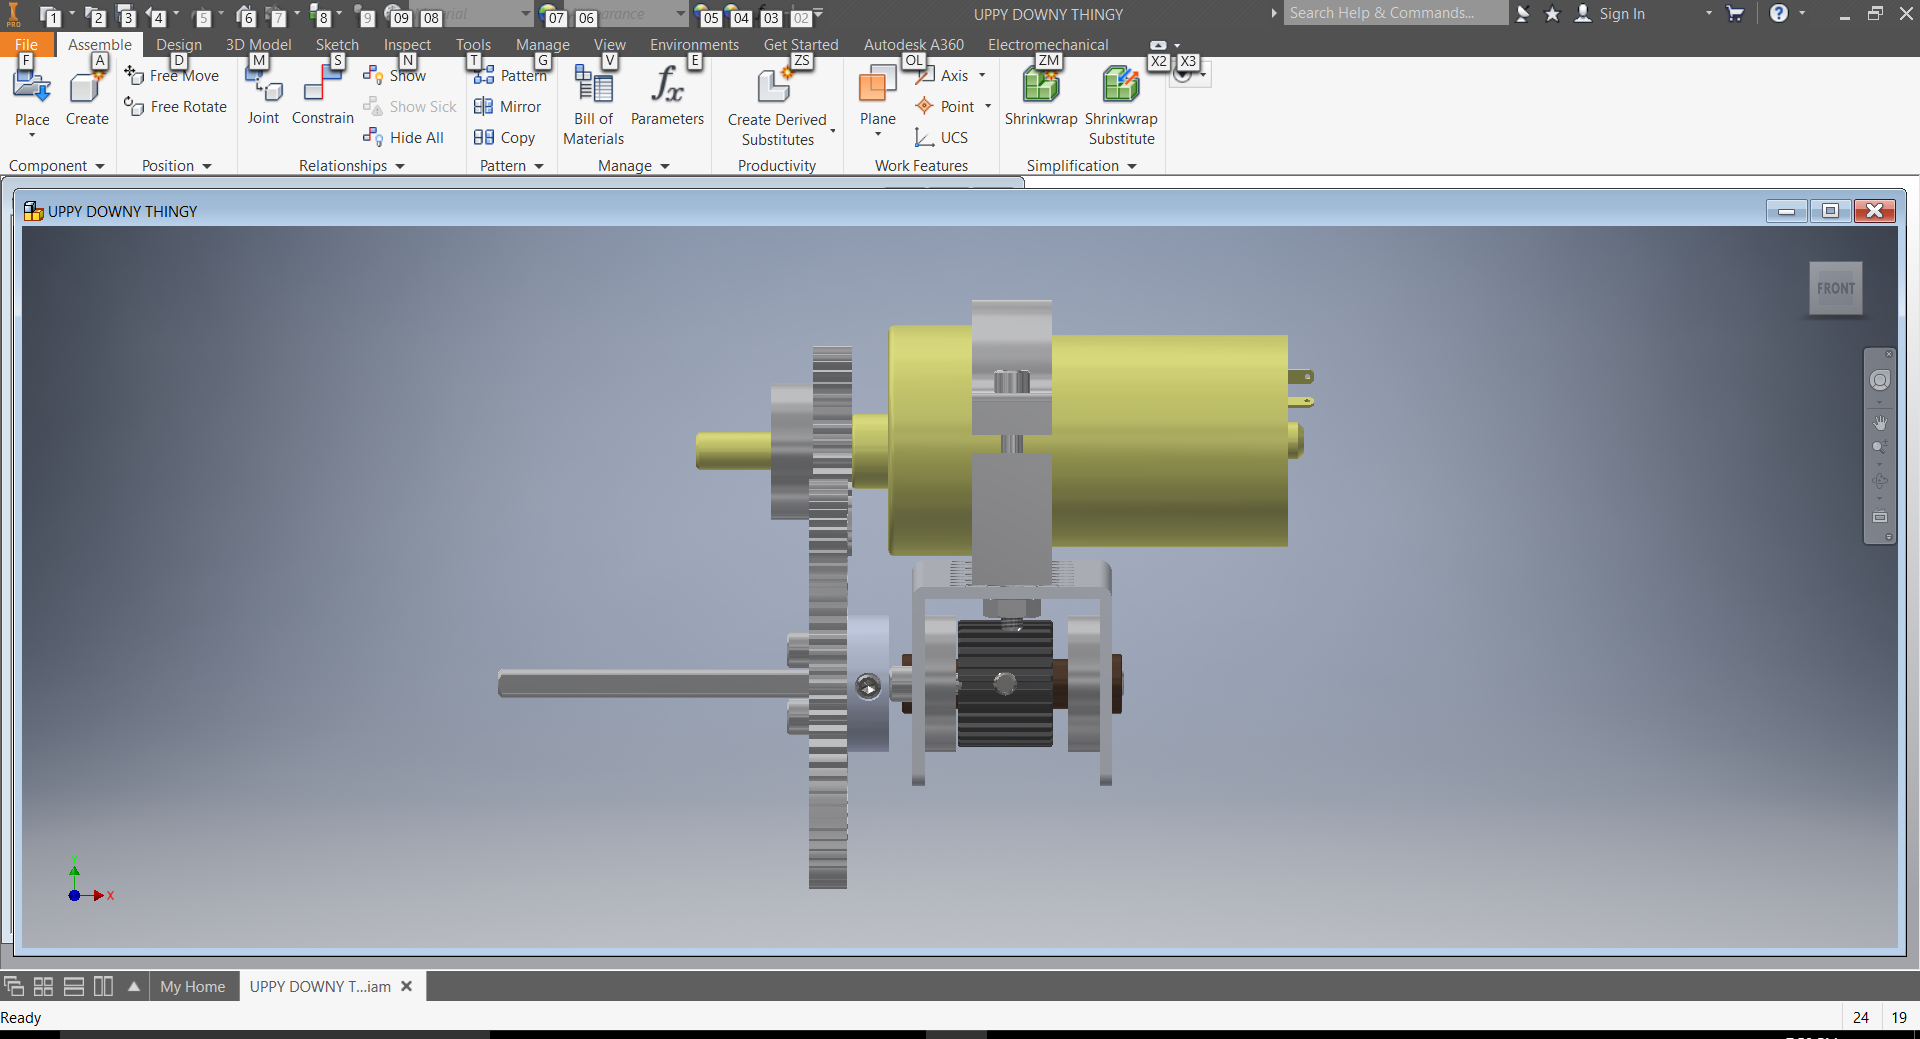 Solved: Rack and Pinion With sliding channel help - Autodesk